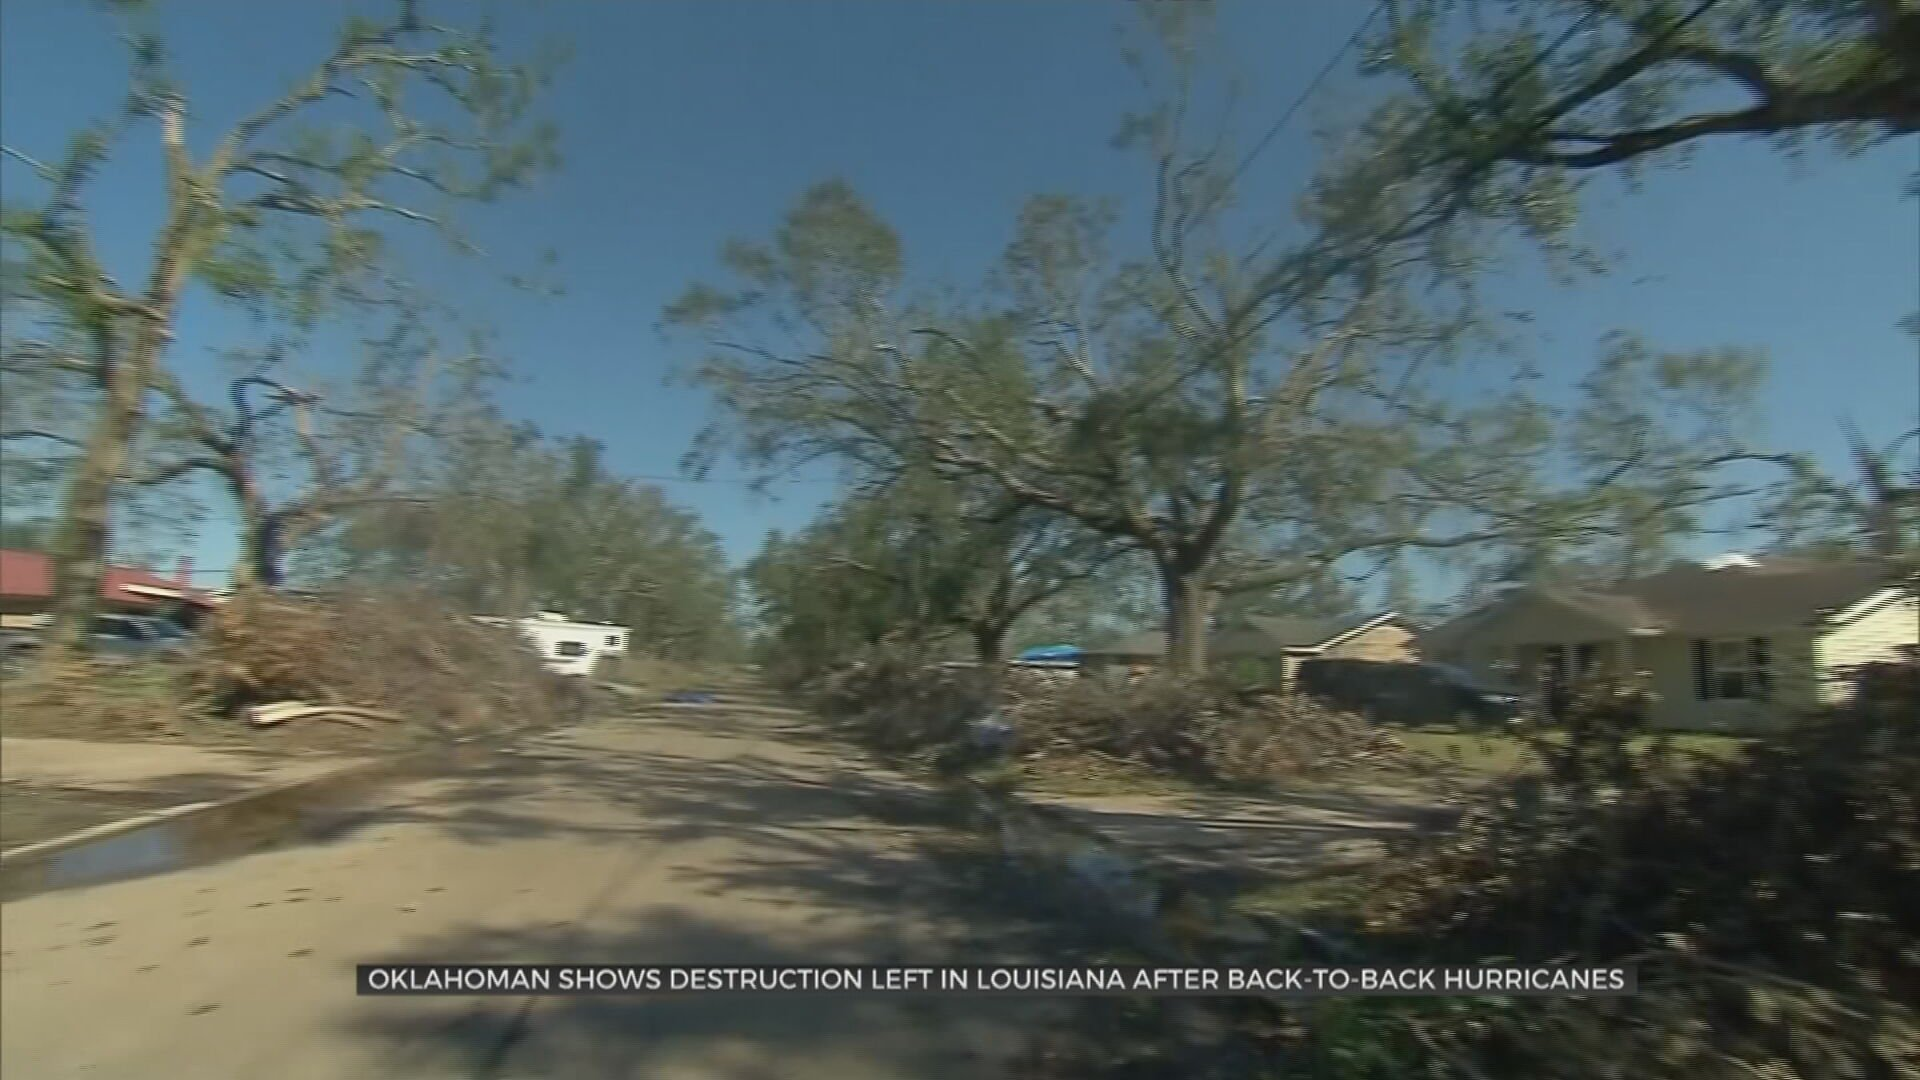 Oklahoman Shows Destruction Left In Louisiana After Back-To-Back Hurricanes